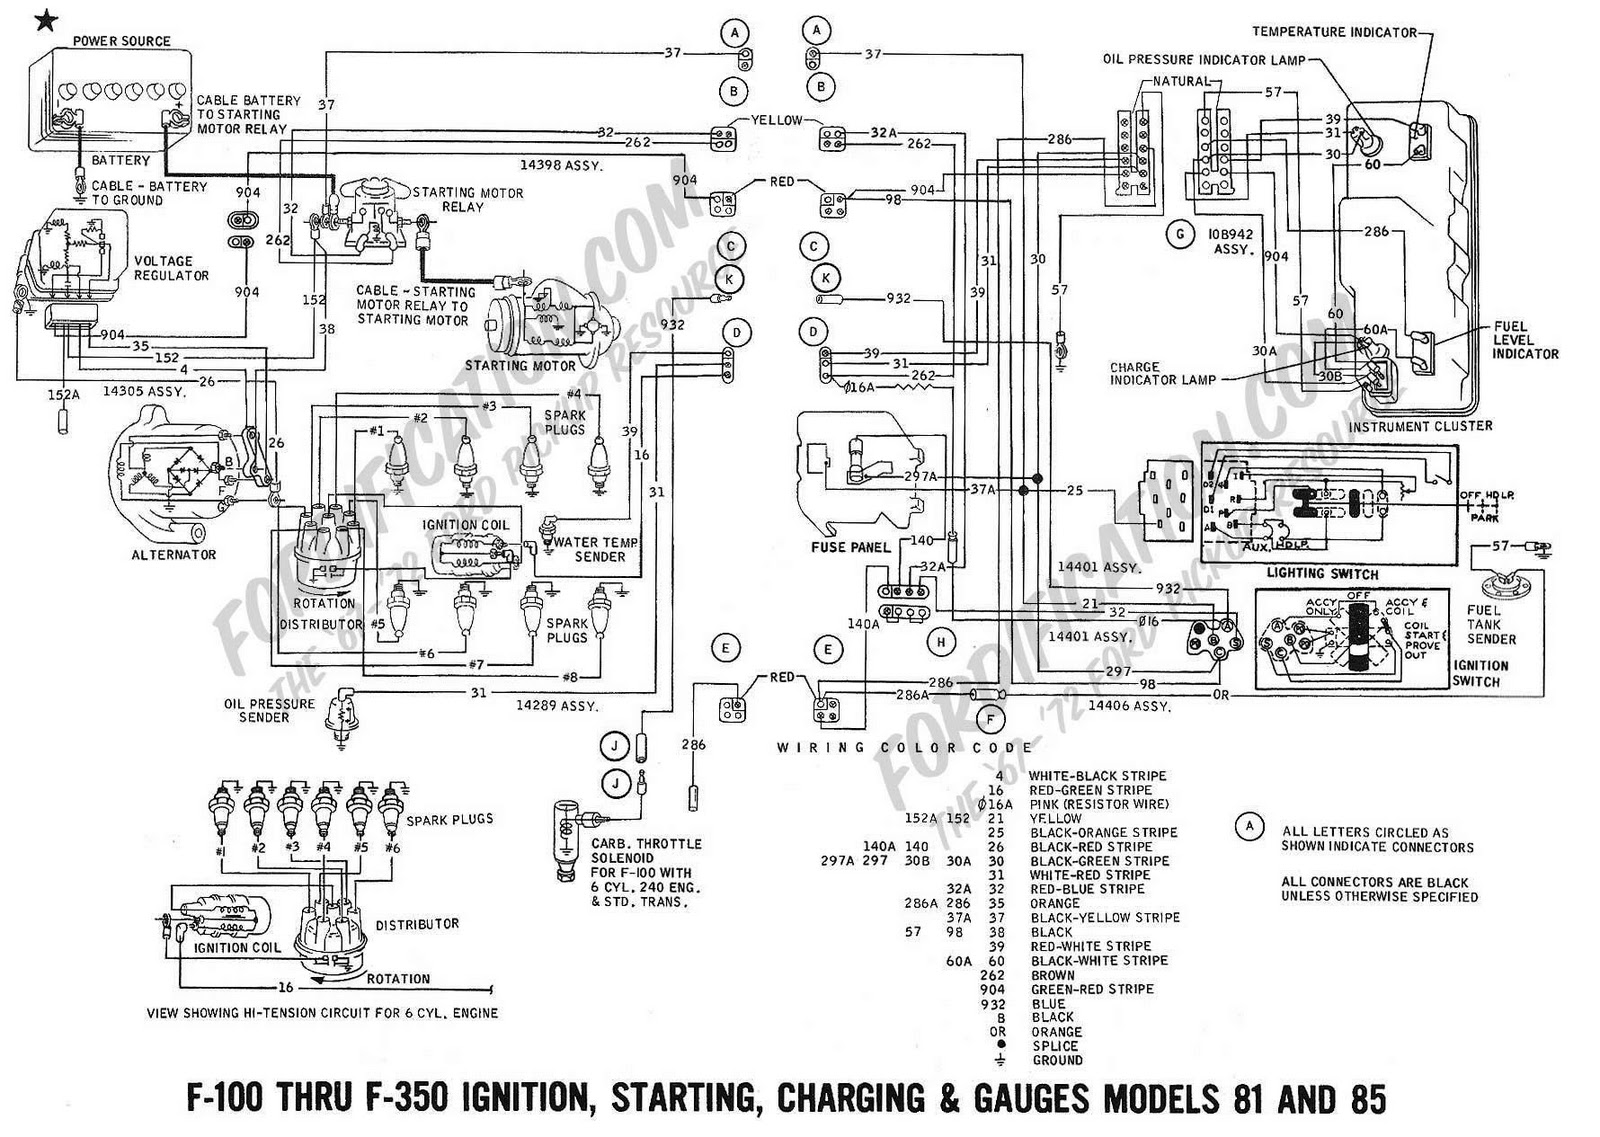 1977 ford ltd wiring diagram wiring diagram schematics ford ignition  control module location 1968 galaxie wiring